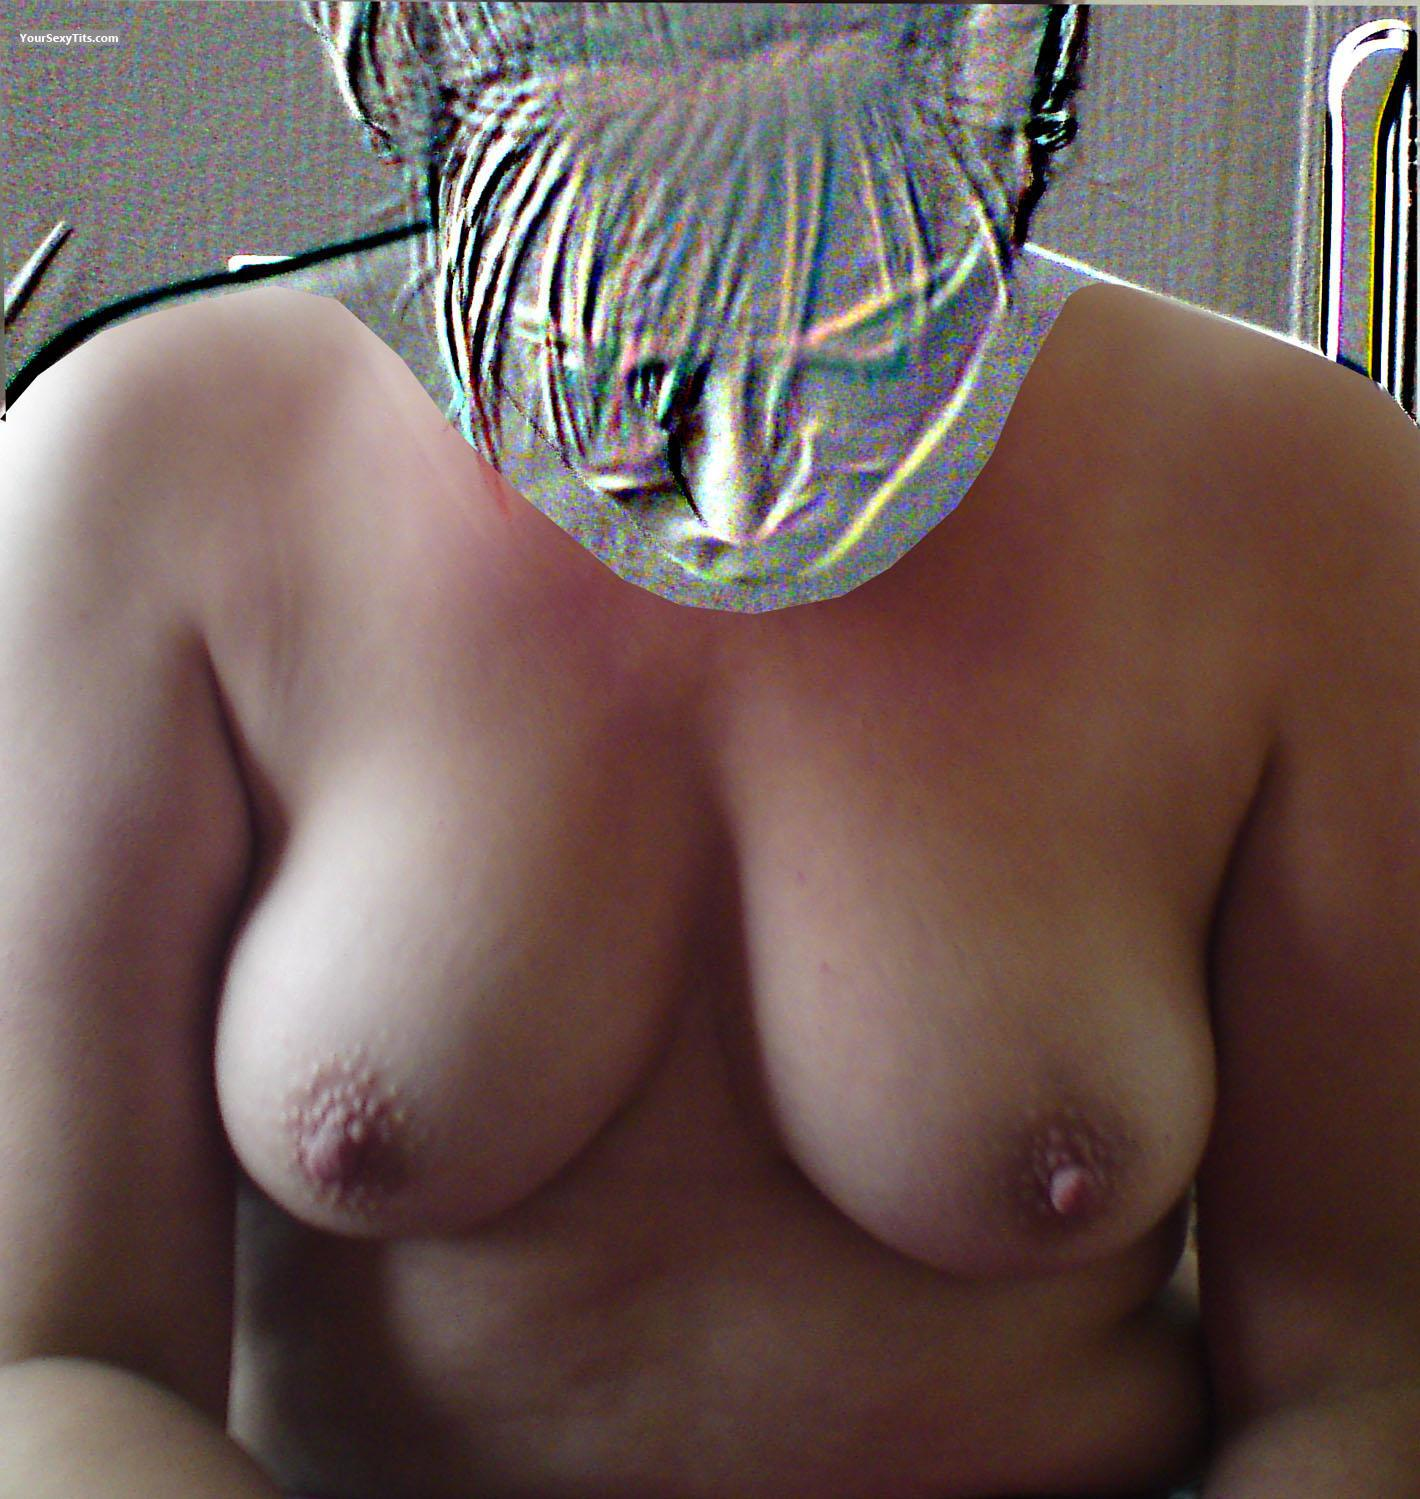 Tit Flash: Medium Tits - Boobalicious from United Kingdom